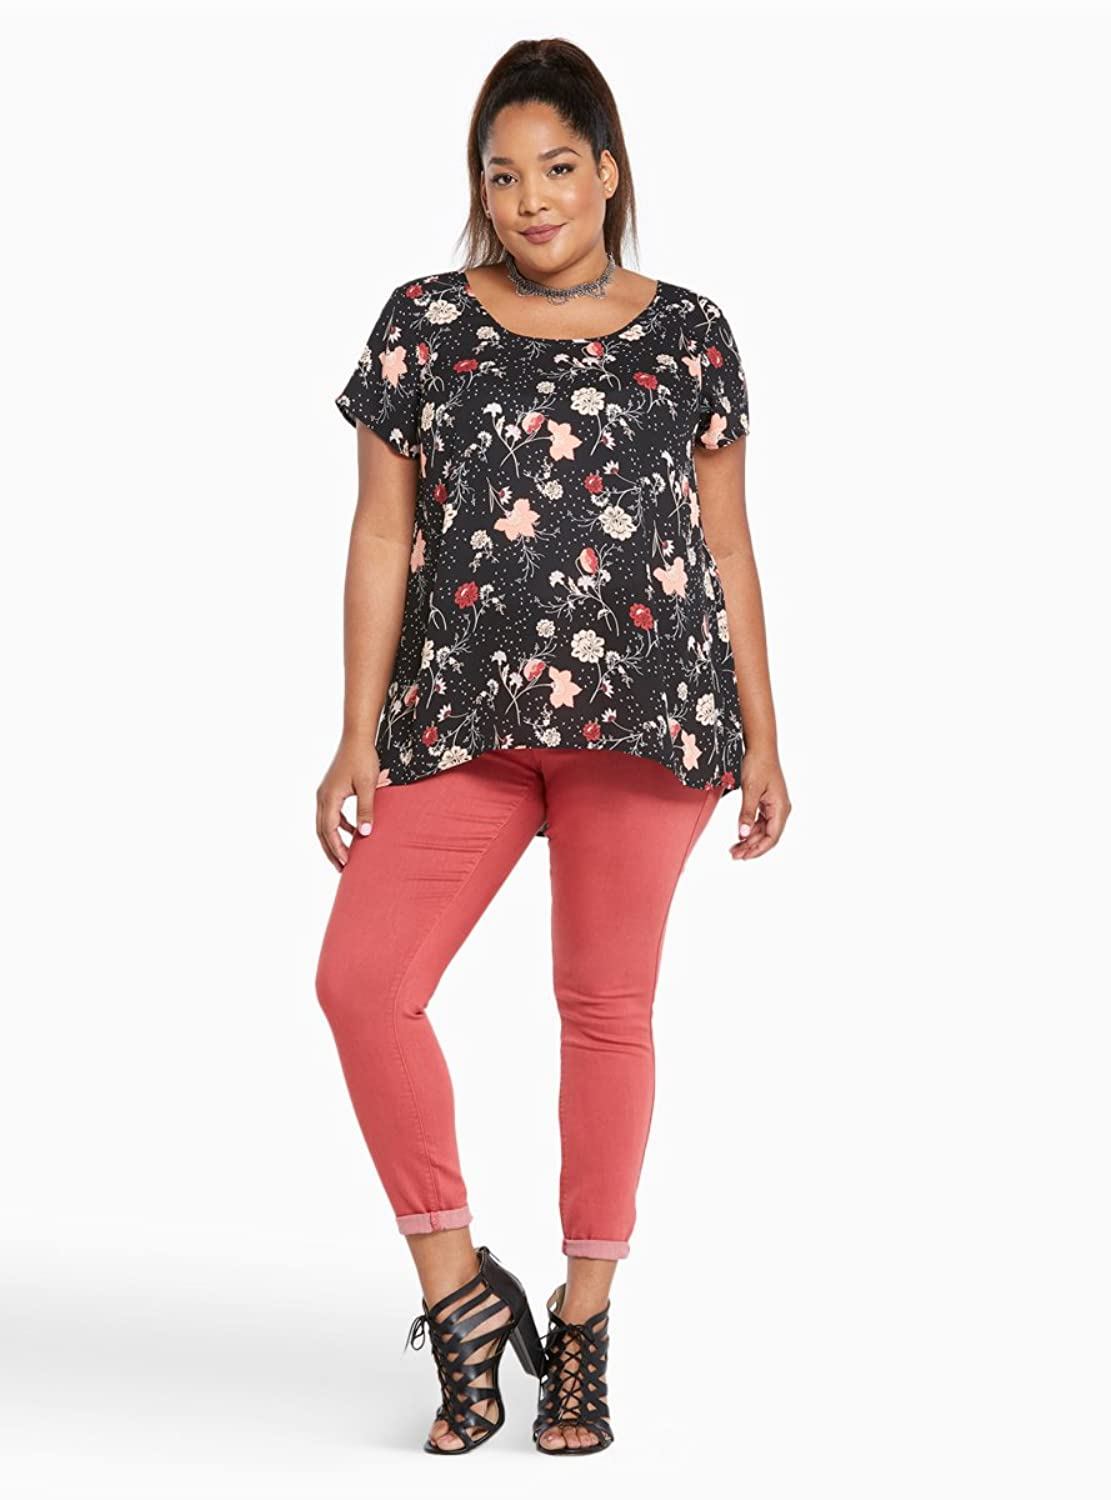 Torrid Jeggings - Mineral Red Wash